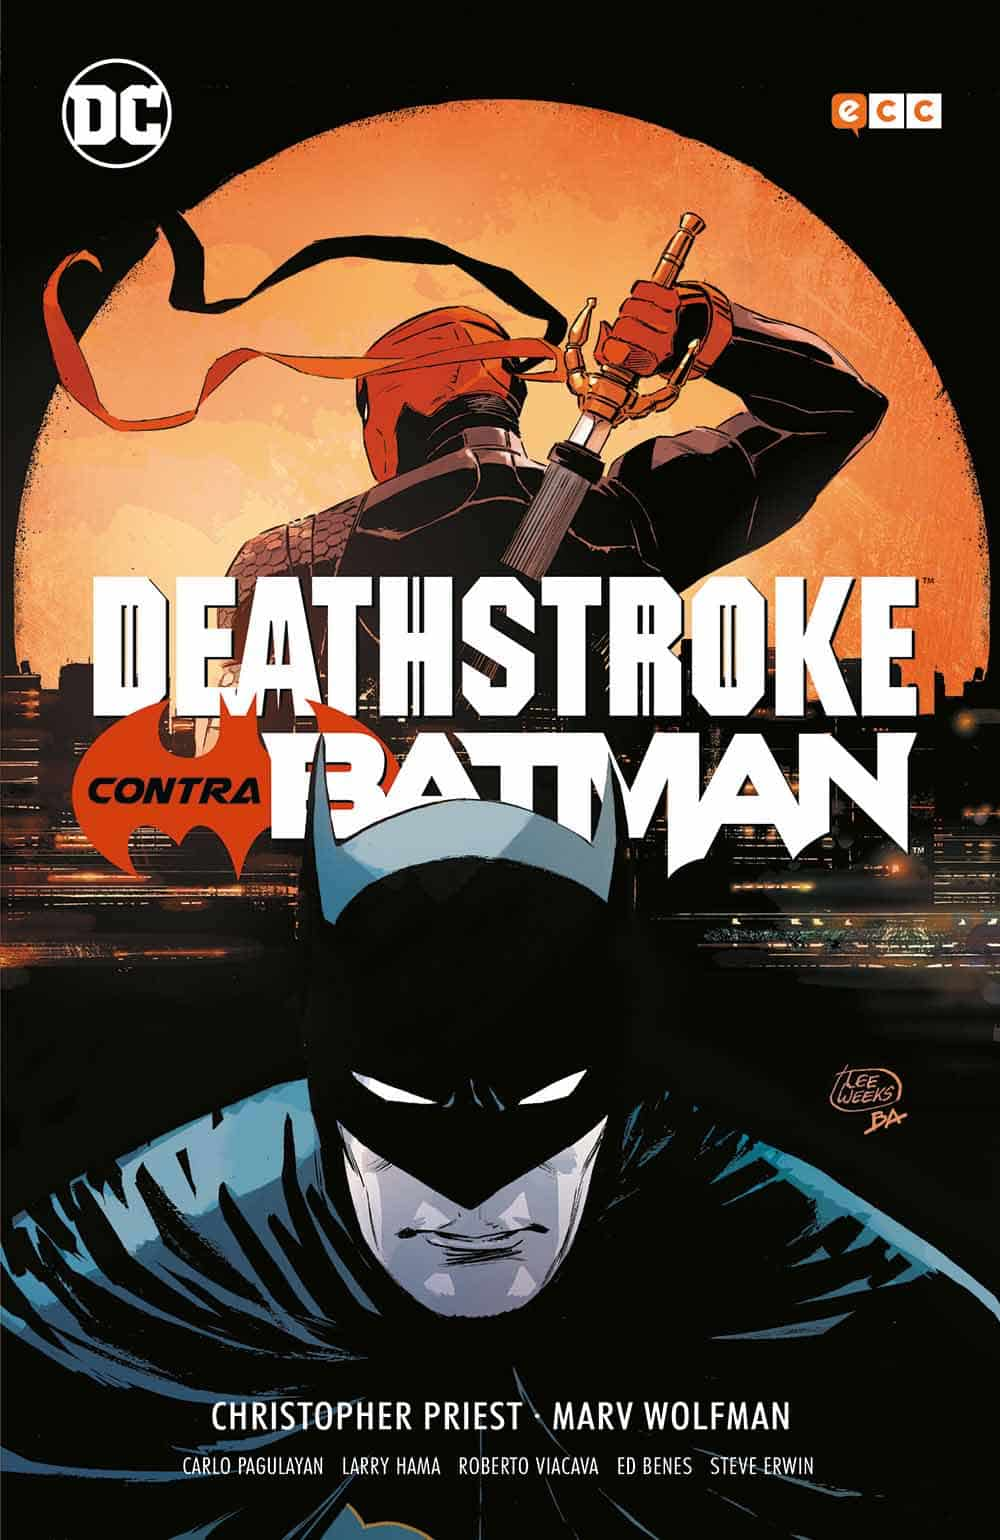 Deathstroke contra Batman cover